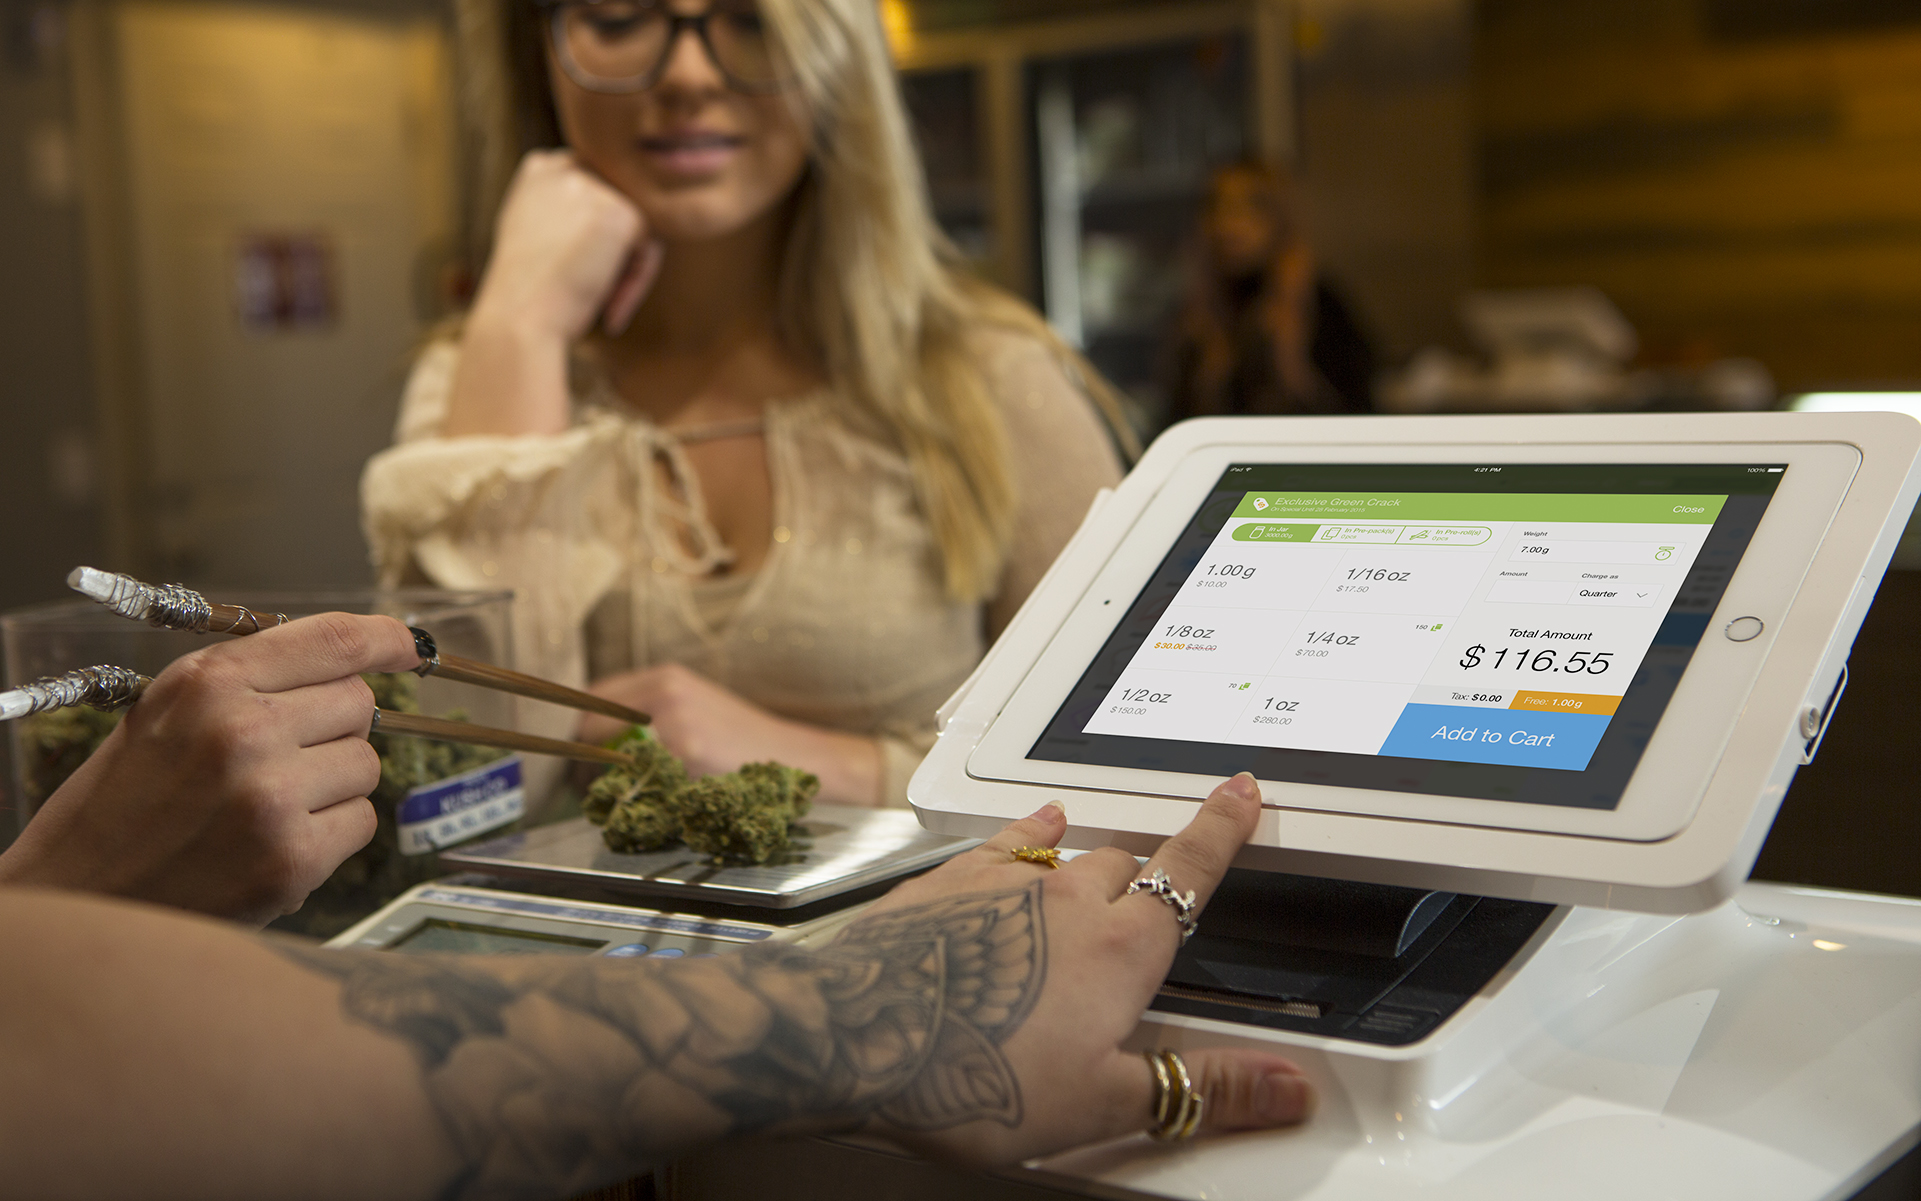 indicaonline dispensary point-of-sale system